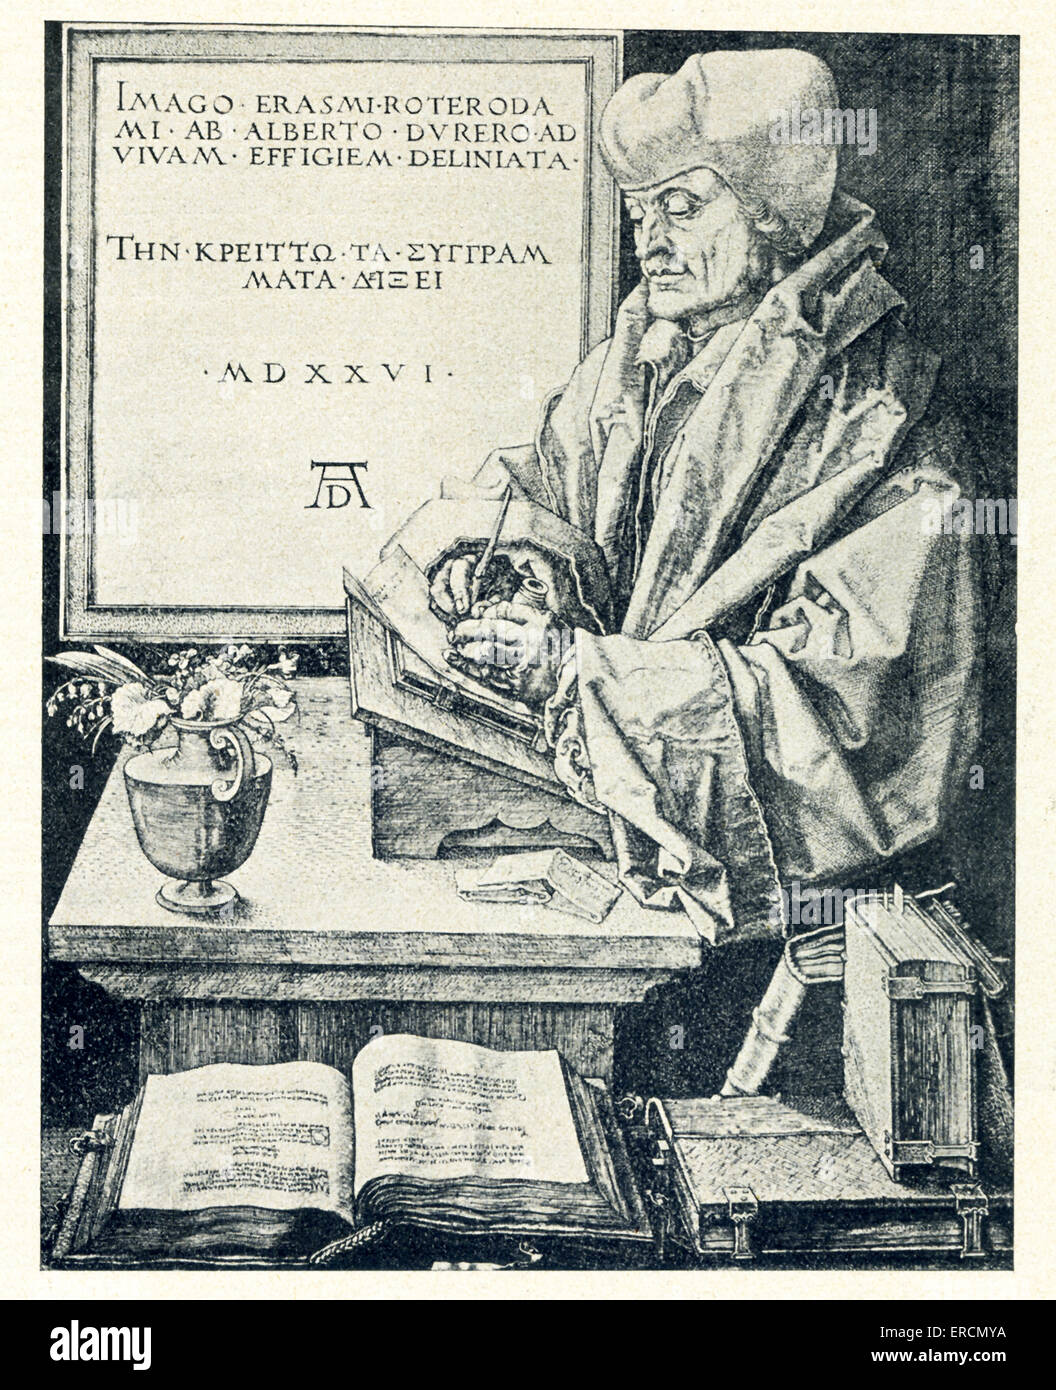 Erasmus Desiderius of Rotterdam was a Dutch Renaissance humanist. He lived from 1466 to 1536. Erasmus was also a - Stock Image